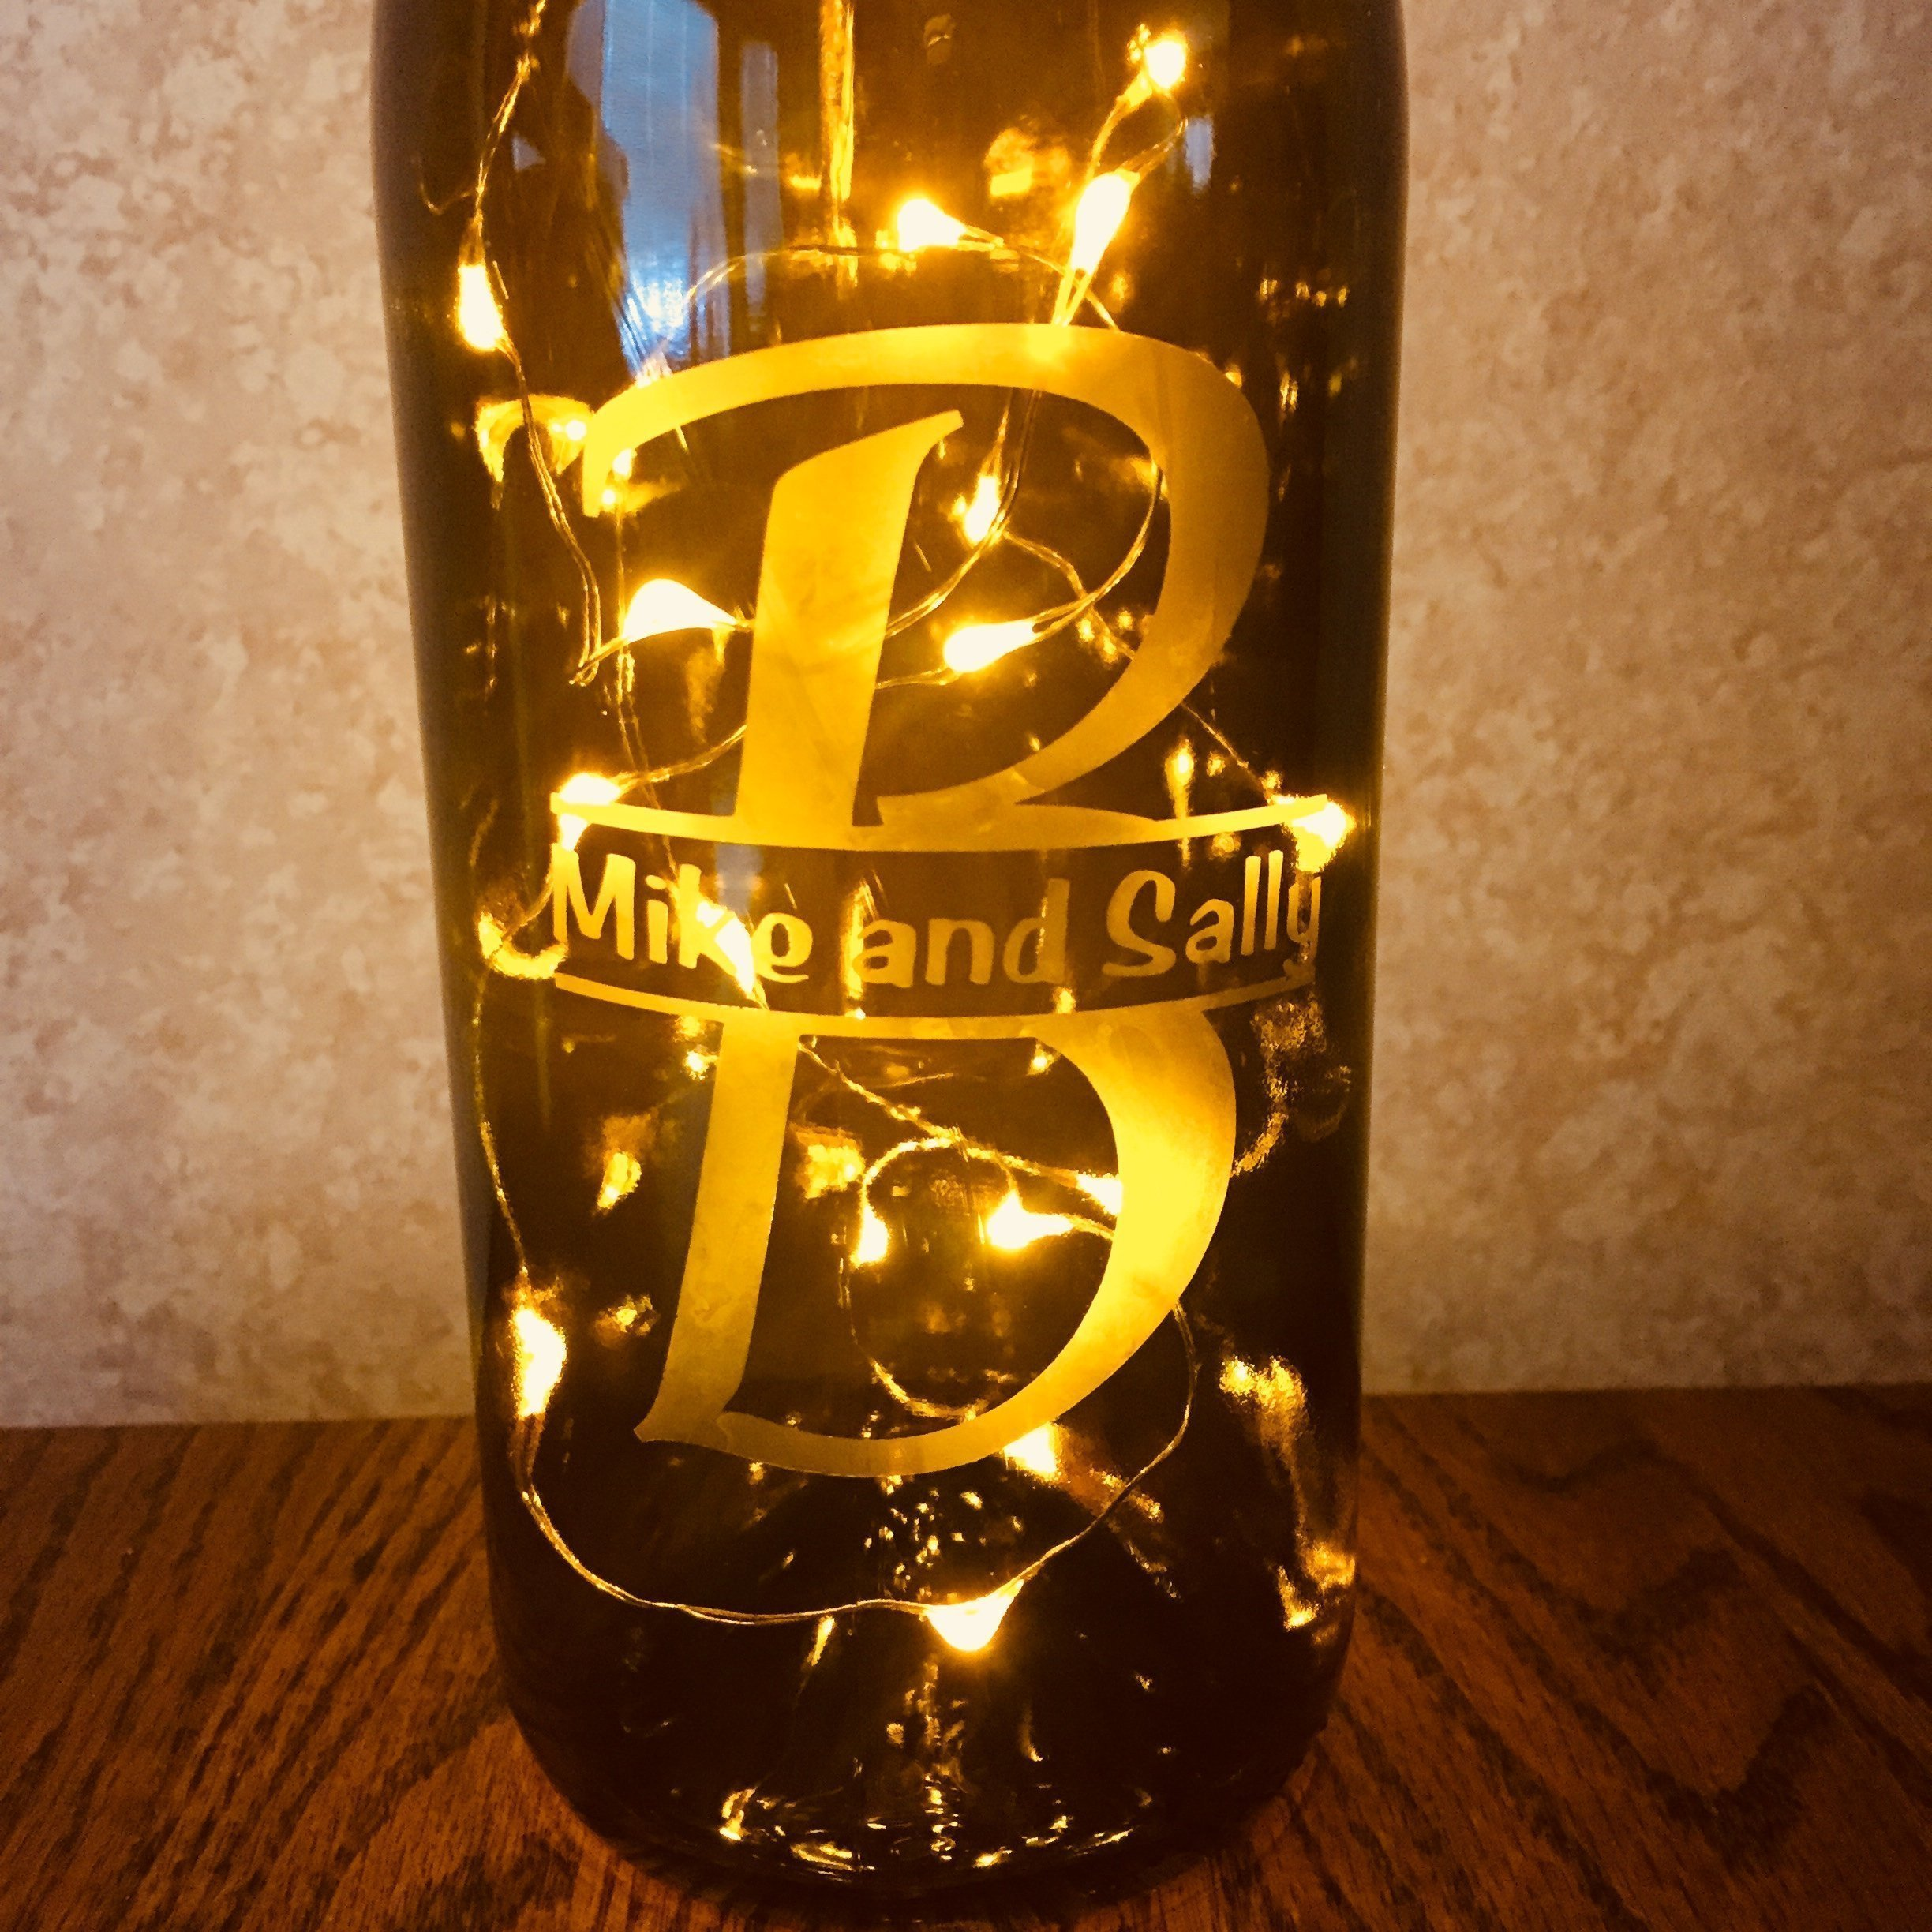 Custom Etched Split Monogram Wine Bottle With Twinkle Fairy Lights Powered from Cork, Anniversary Wine Decor With White Lights, Wedding Gift by Wine Wicks and Gifts